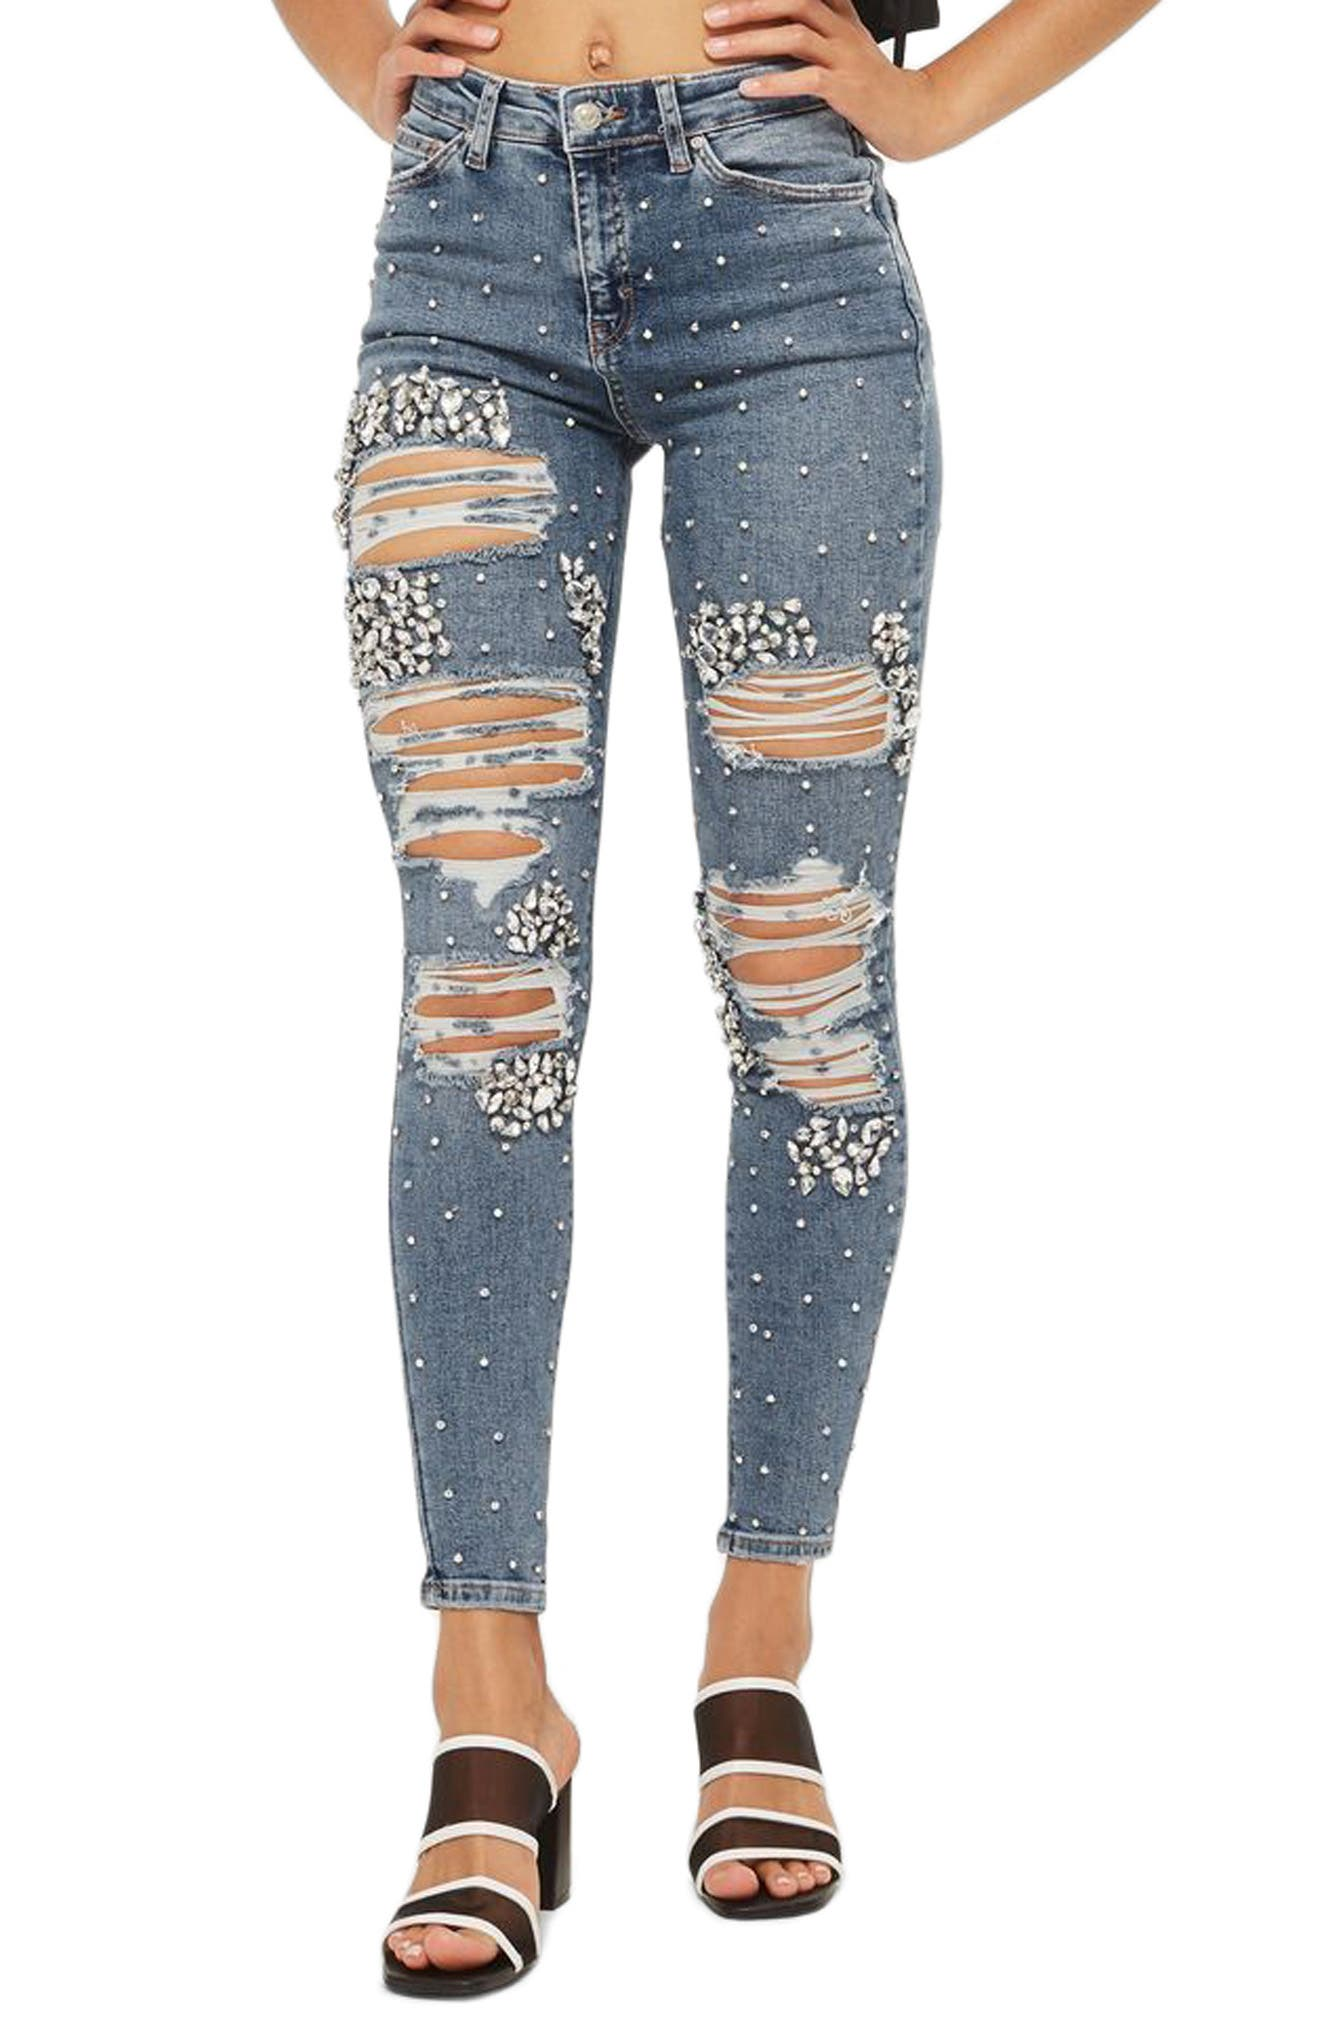 Limited Edition Jamie Gem Encrusted Skinny Jeans,                             Main thumbnail 1, color,                             400